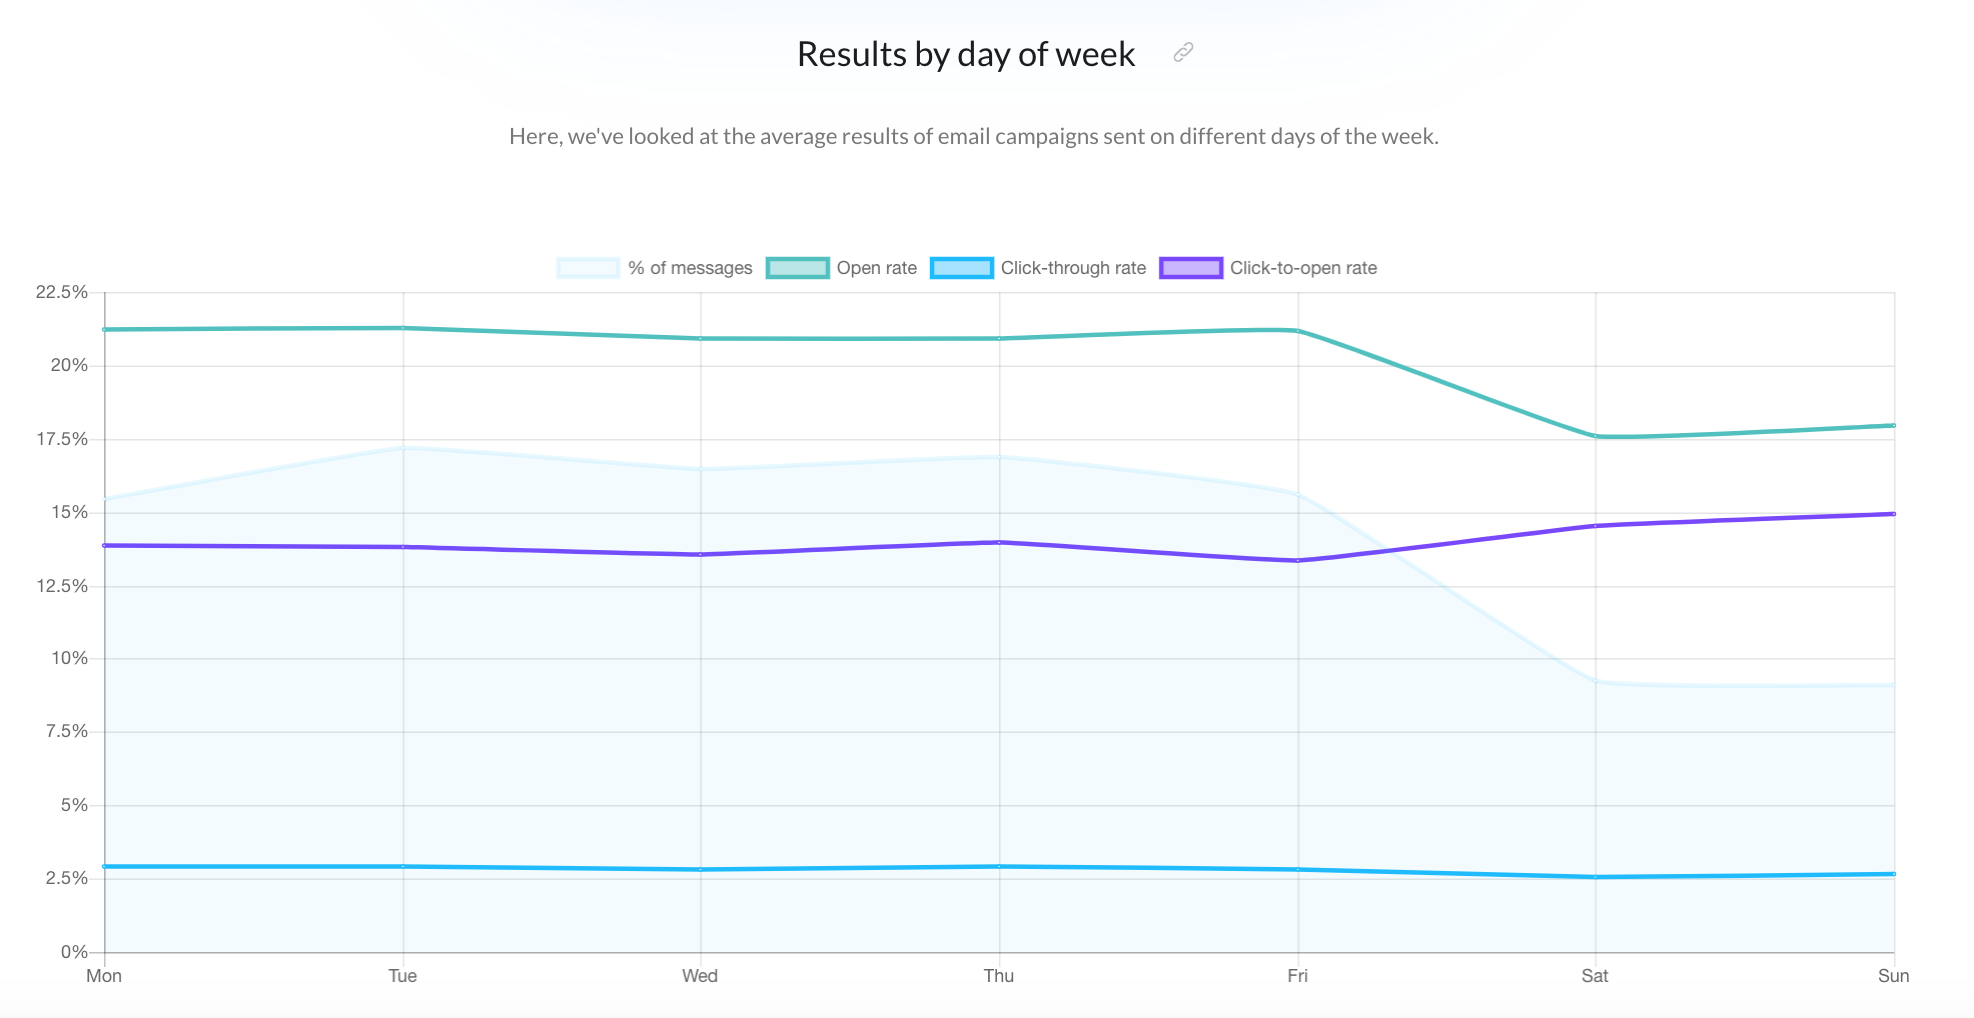 email results by day of week.